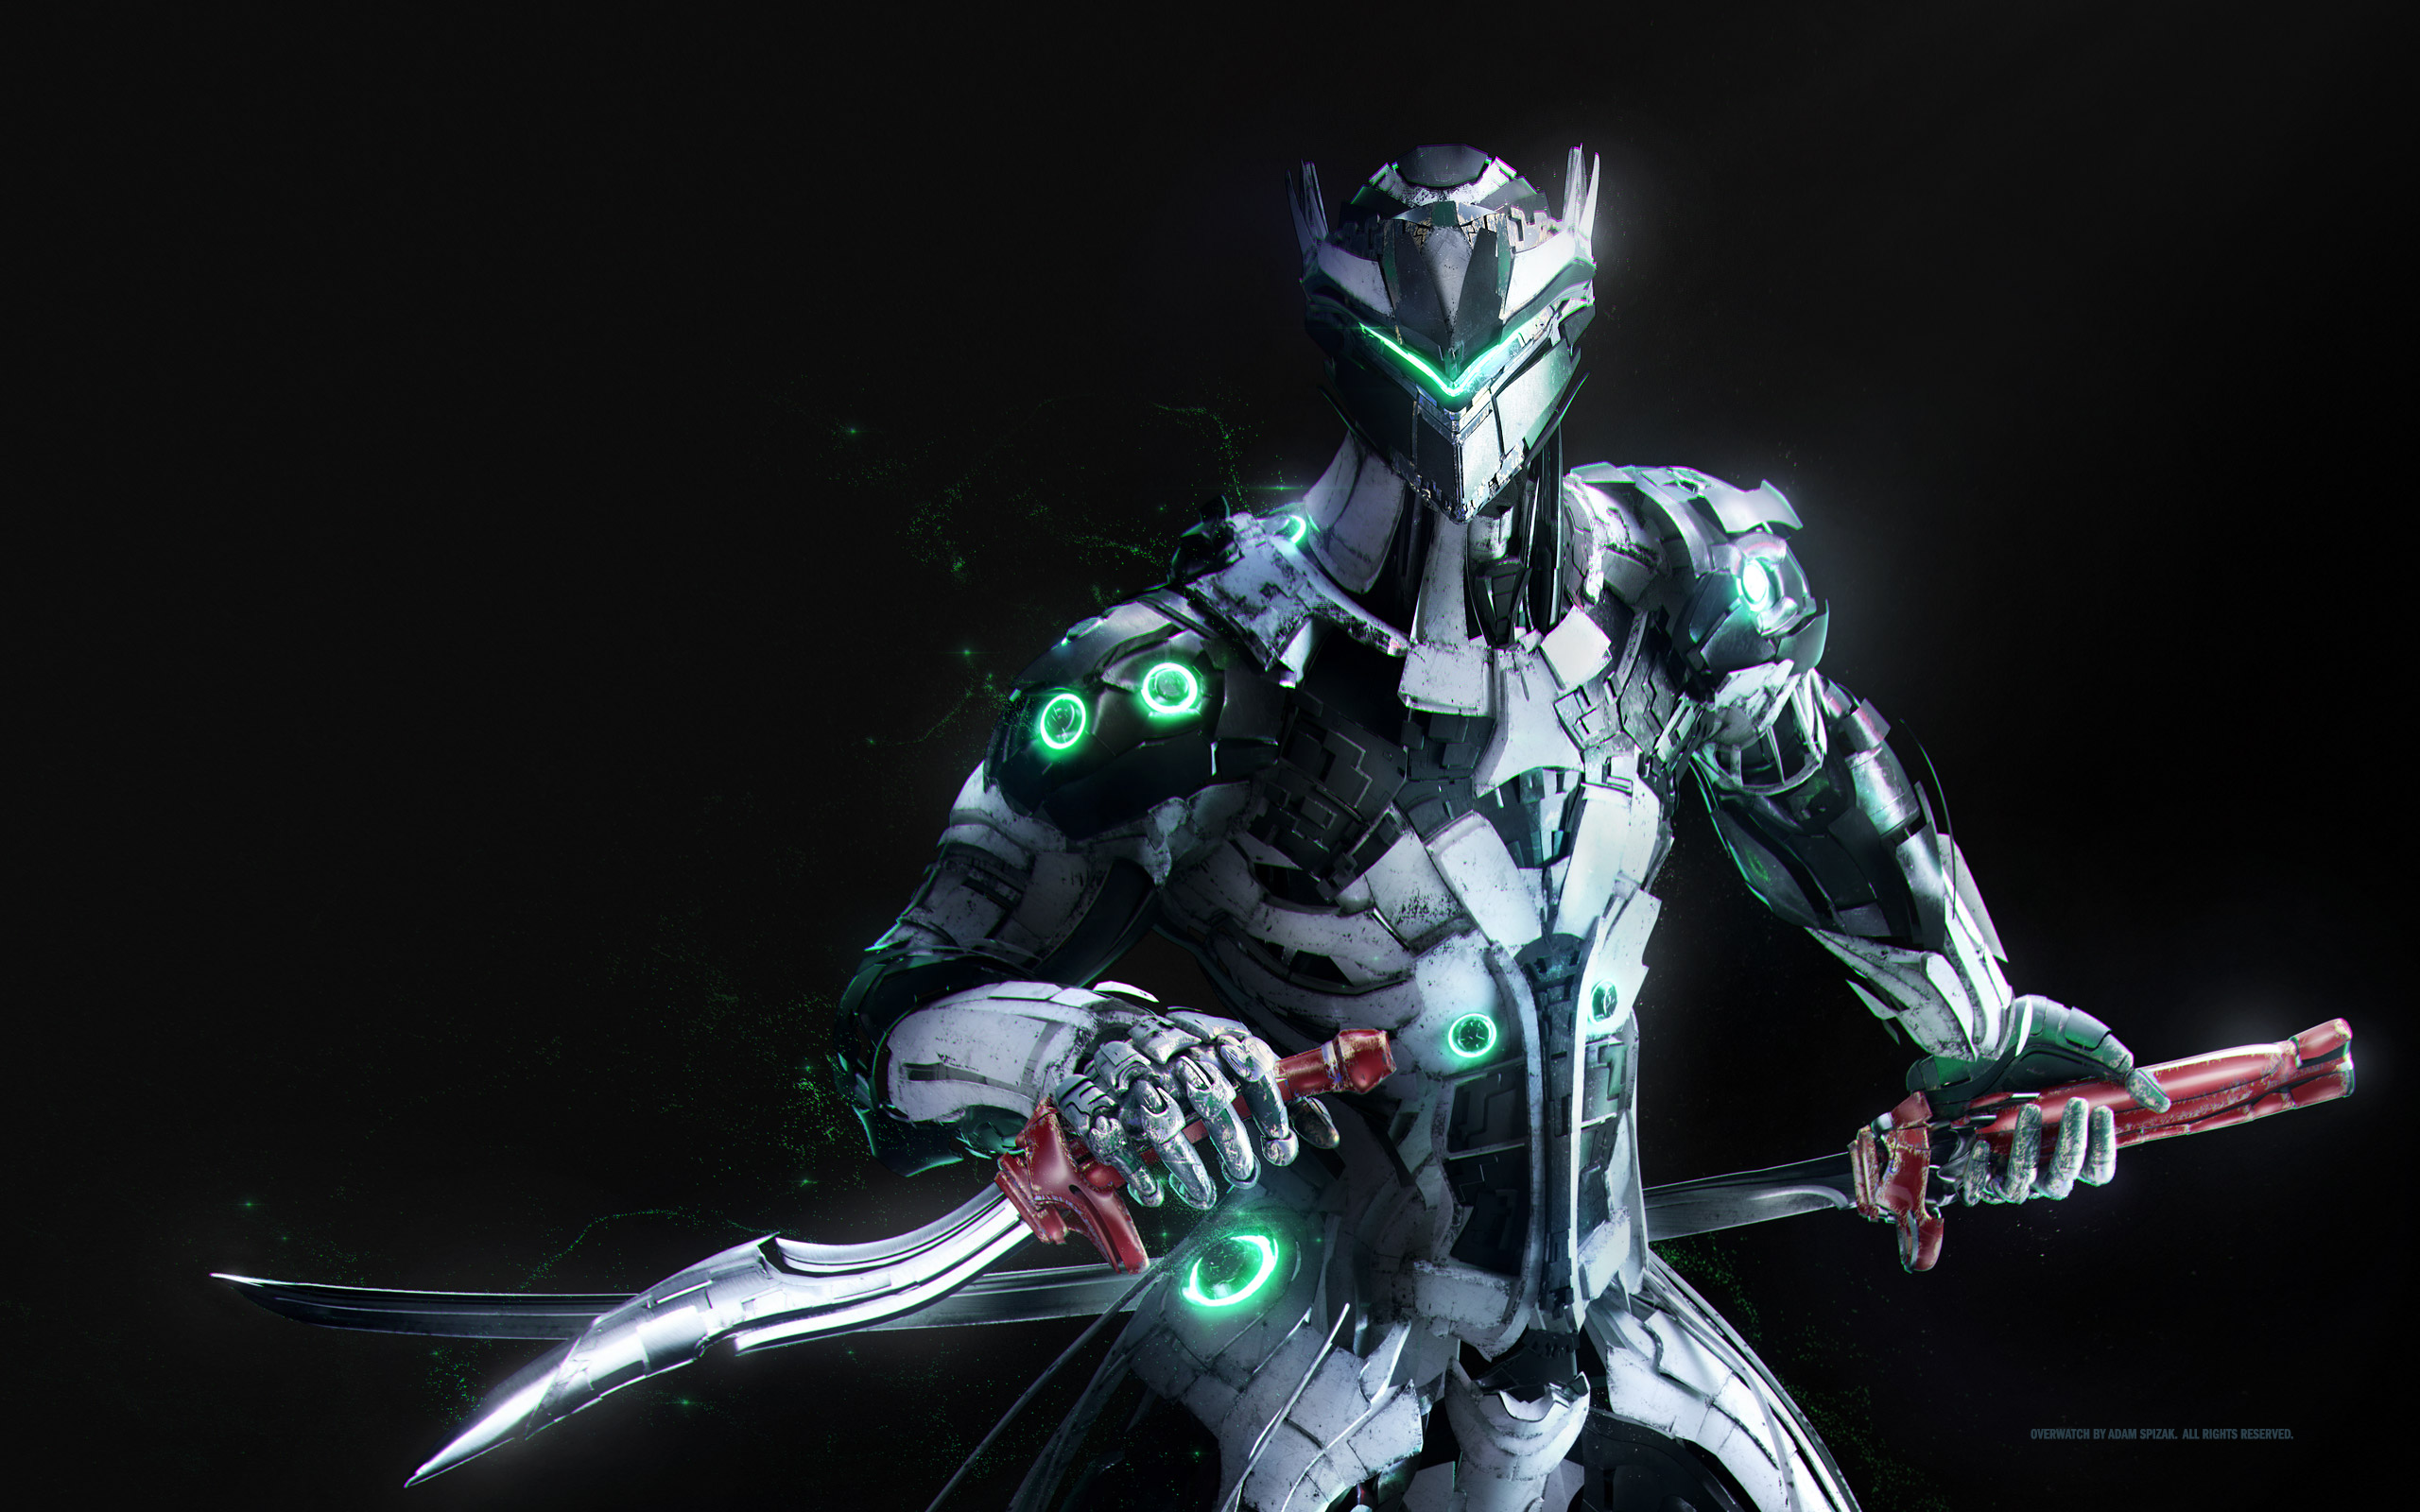 4k Wallpaper 3d 3840x2400 Genji Overwatch Artwork Hd Games 4k Wallpapers Images